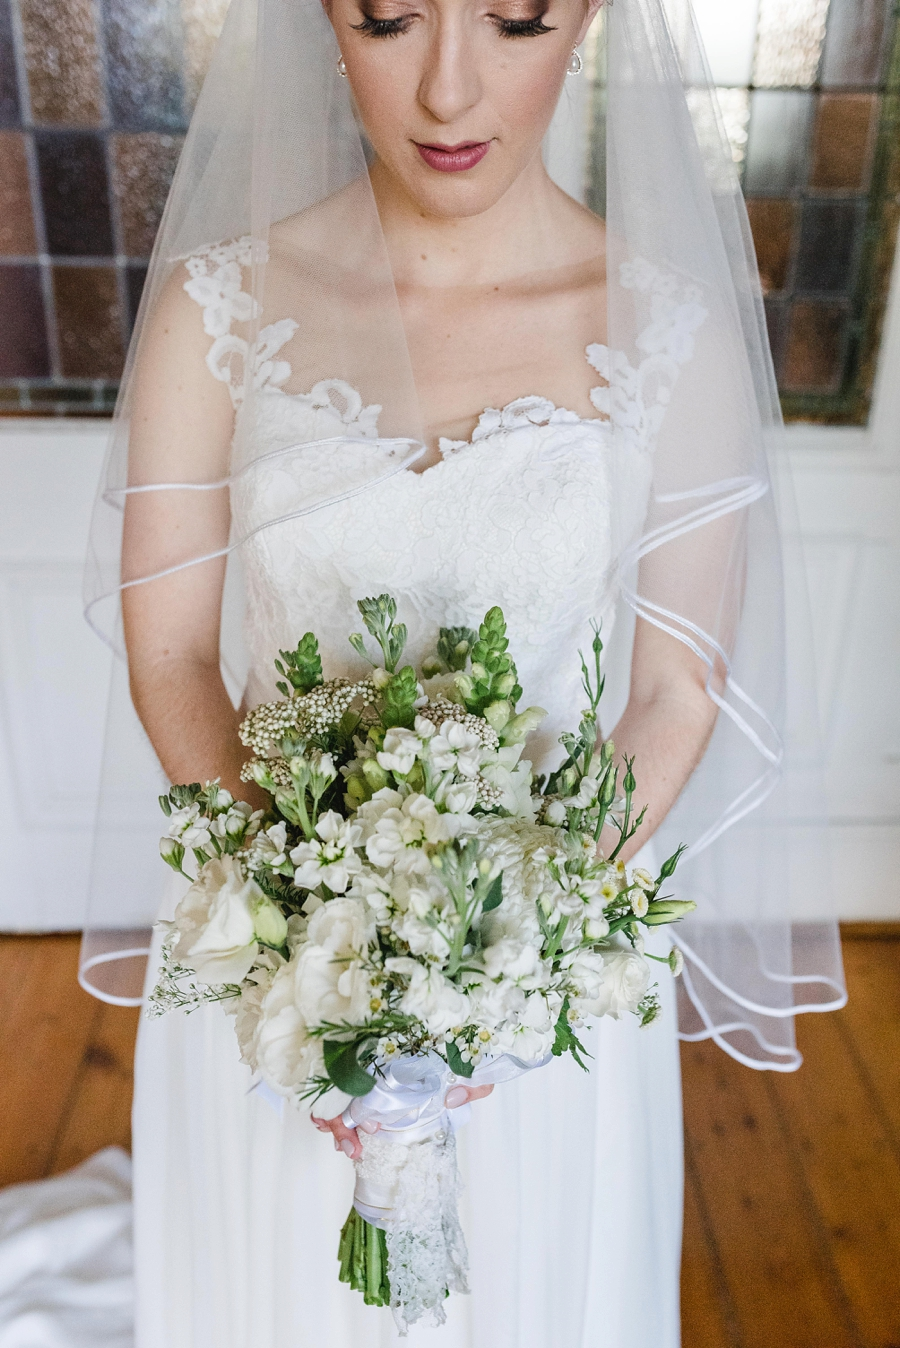 kate-martens-photography-gb-salmond-wedding_calderwoodhall_0115